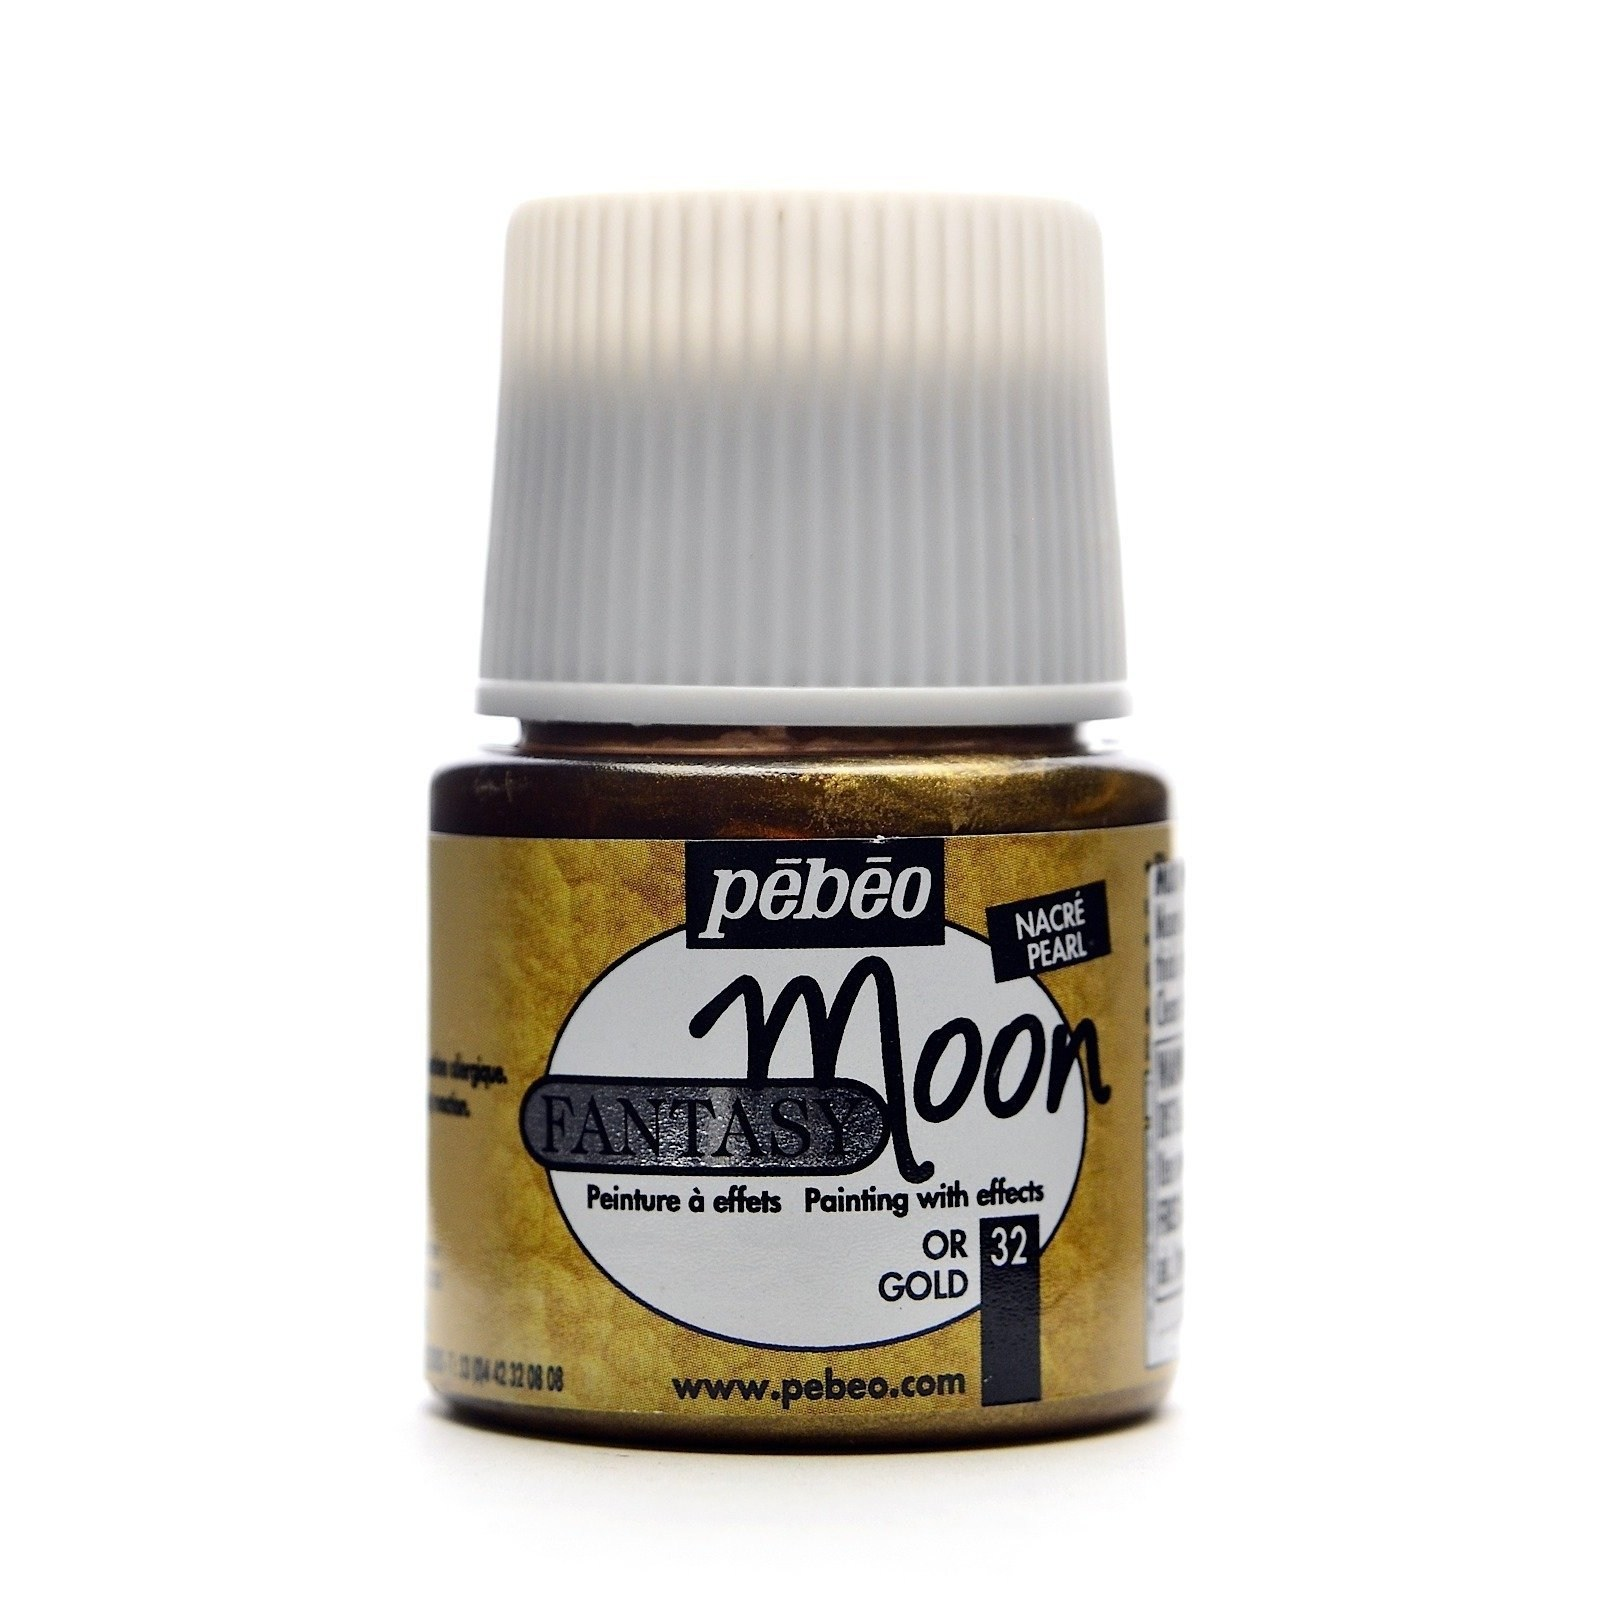 Fantasy Moon Effect Paint veil of smoke, 45 ml (pack of 3)